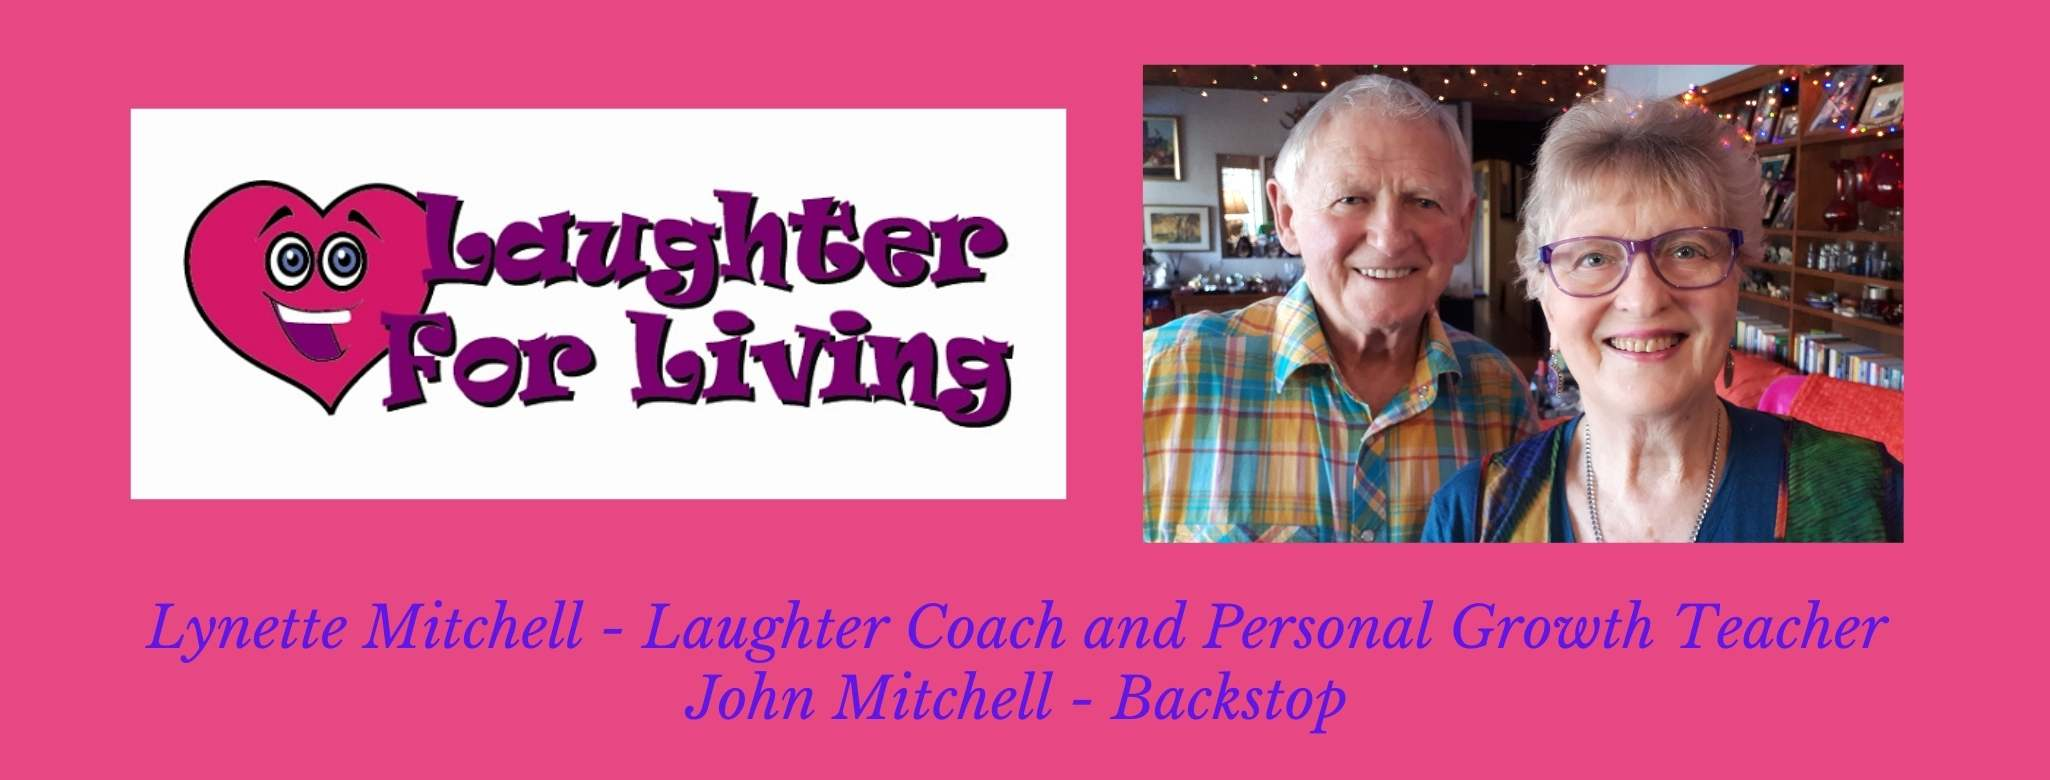 Lynette Mitchell - Laughter Coach